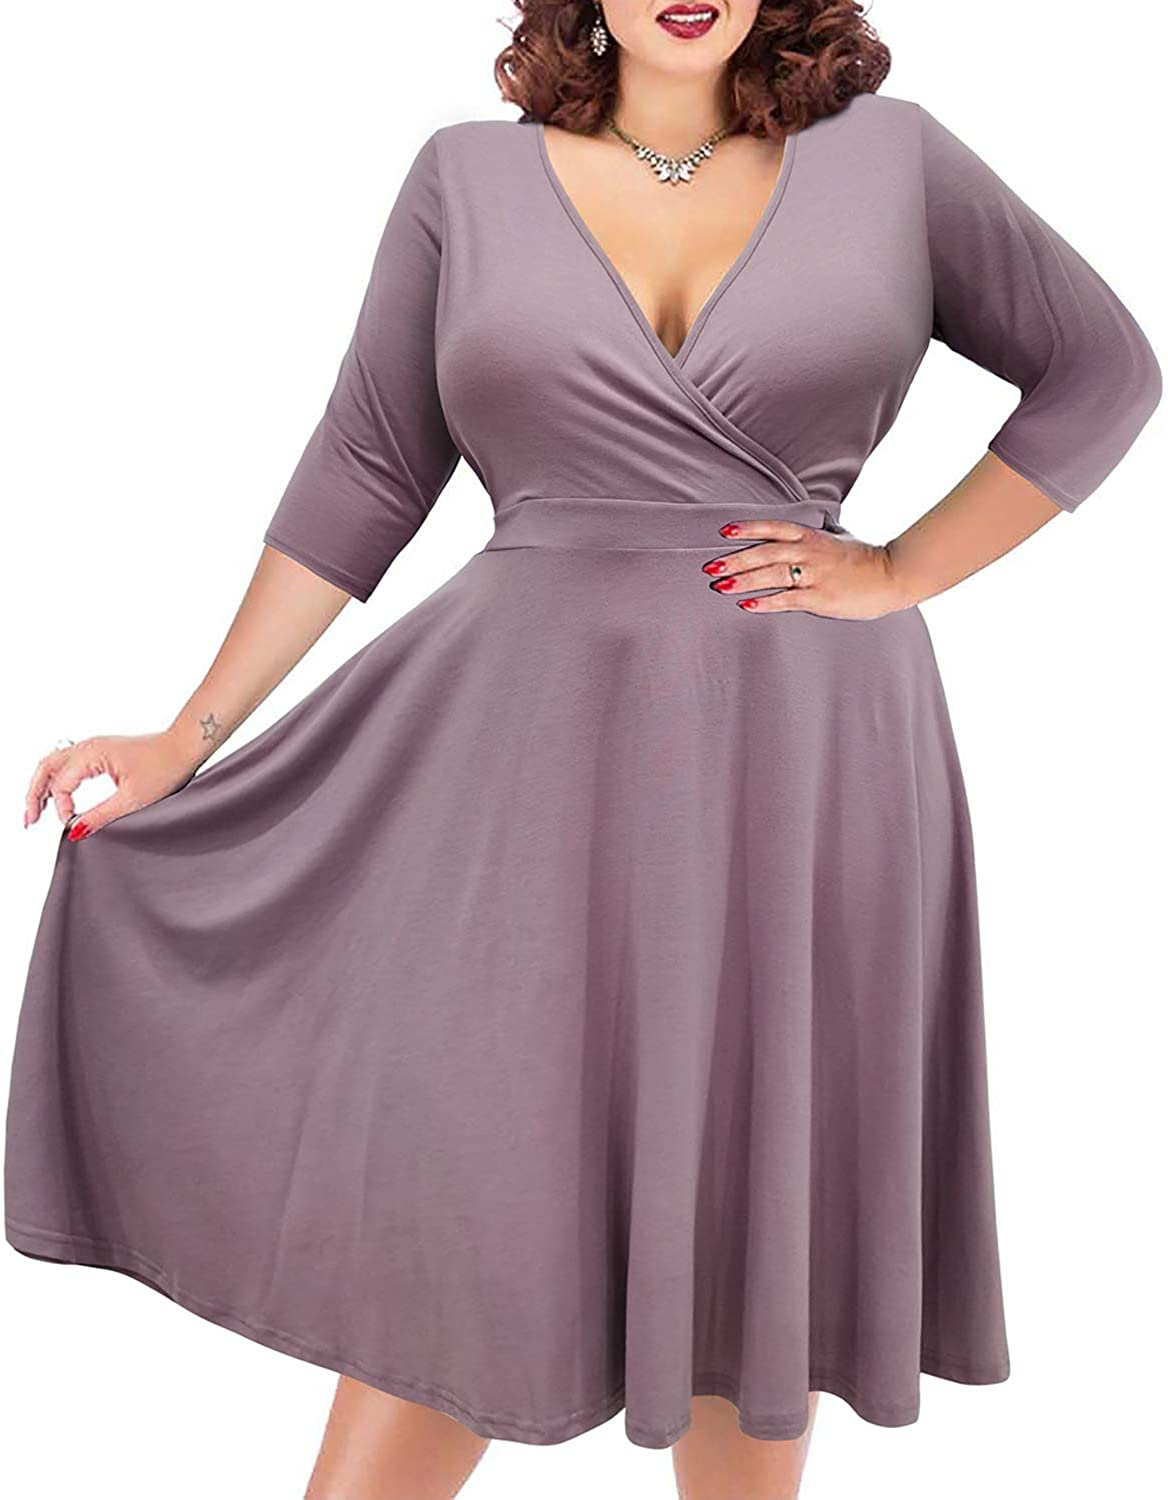 What Did Women Wear in the 1950s? 1950s Fashion Guide Nemidor Womens V-Neckline Stretchy Casual Midi Plus Size Bridesmaid Dress $29.99 AT vintagedancer.com